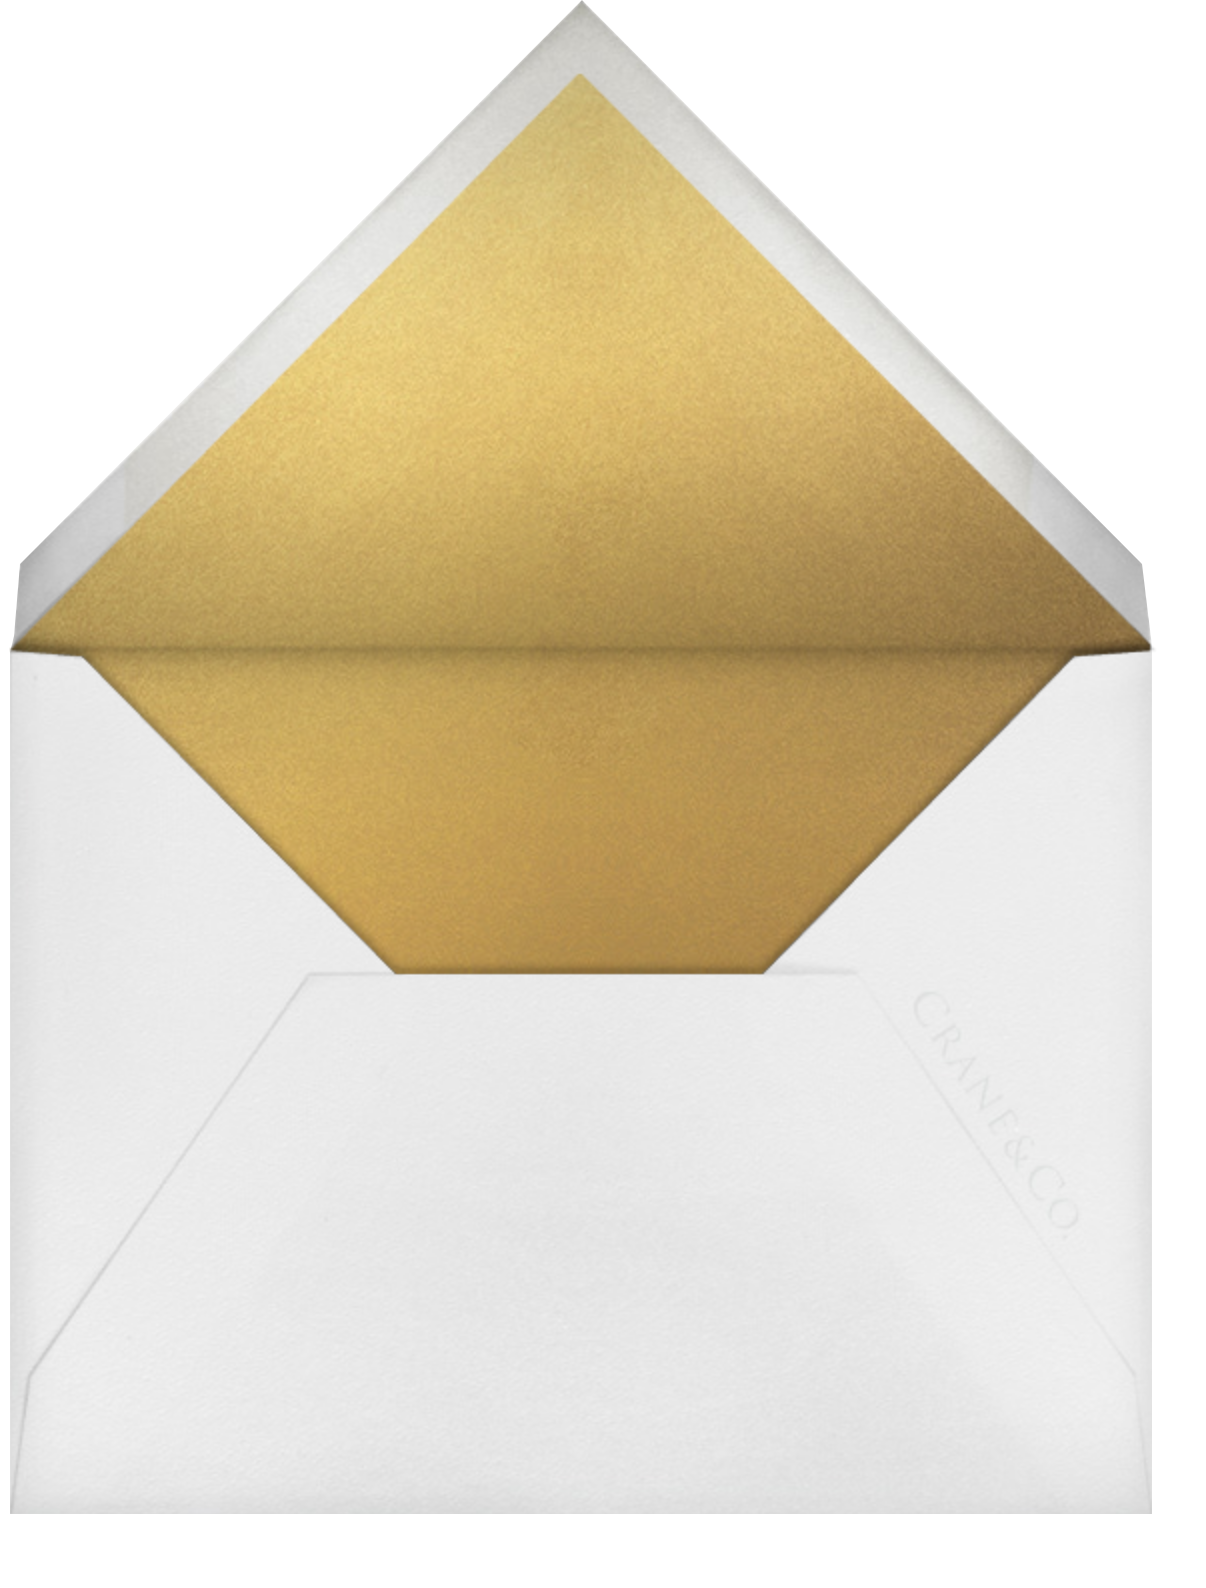 Wilcox - Gold - Paperless Post - Engagement party - envelope back